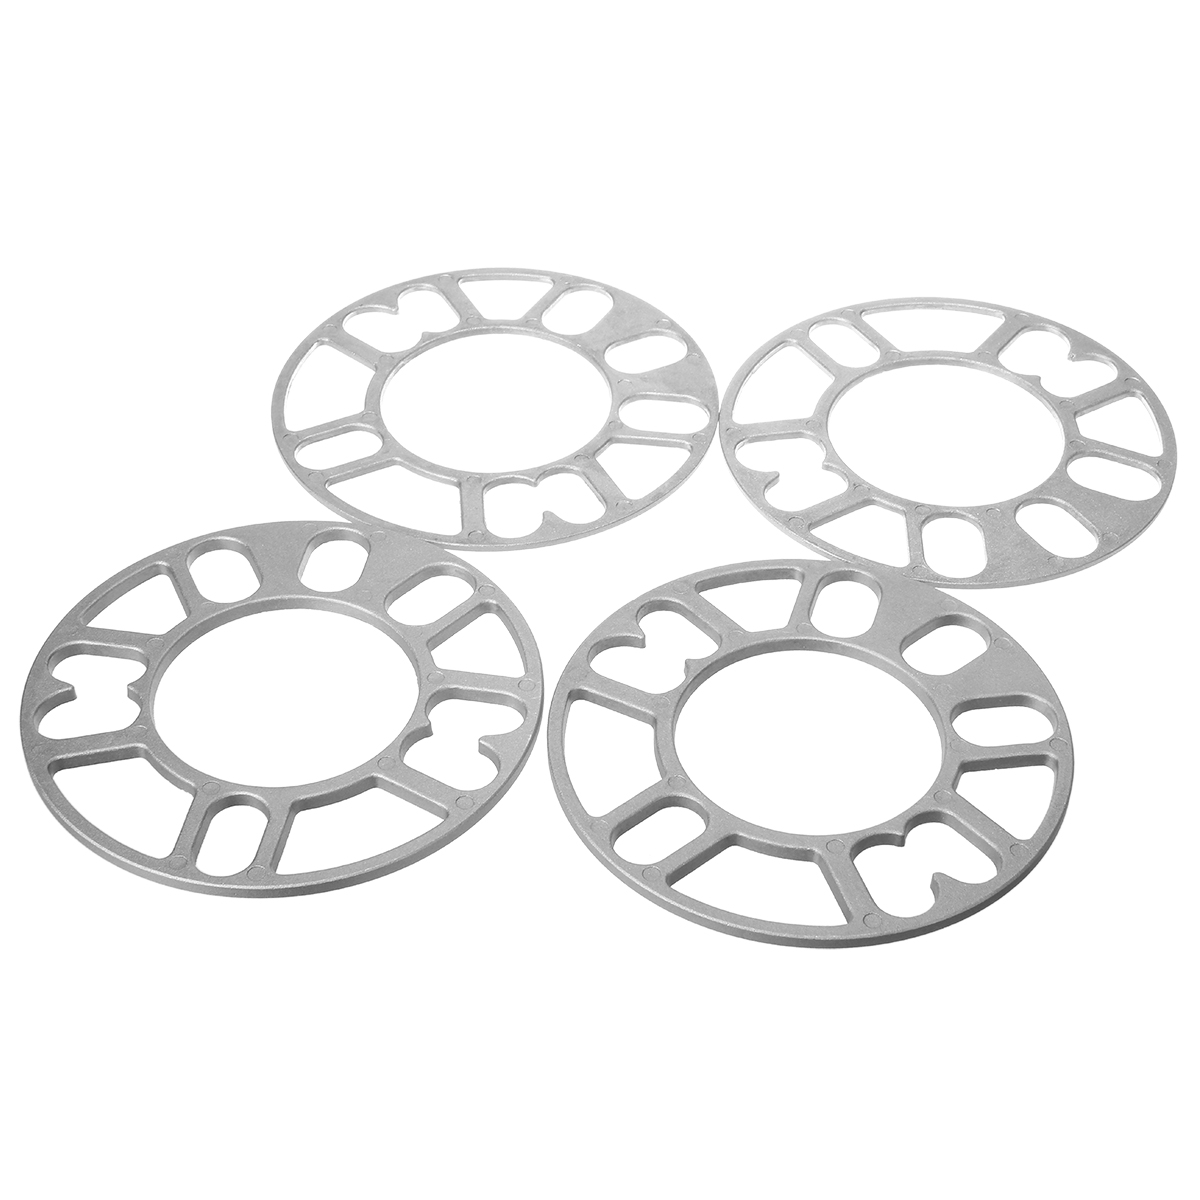 Universal 4pcs 3mm 5mm Alloy Wheel Spacers Adaptor Shims Plate 4/5 Stud Silver 4x100 4x108 4x114.3 5x100 5x108 5x112 5x114.3